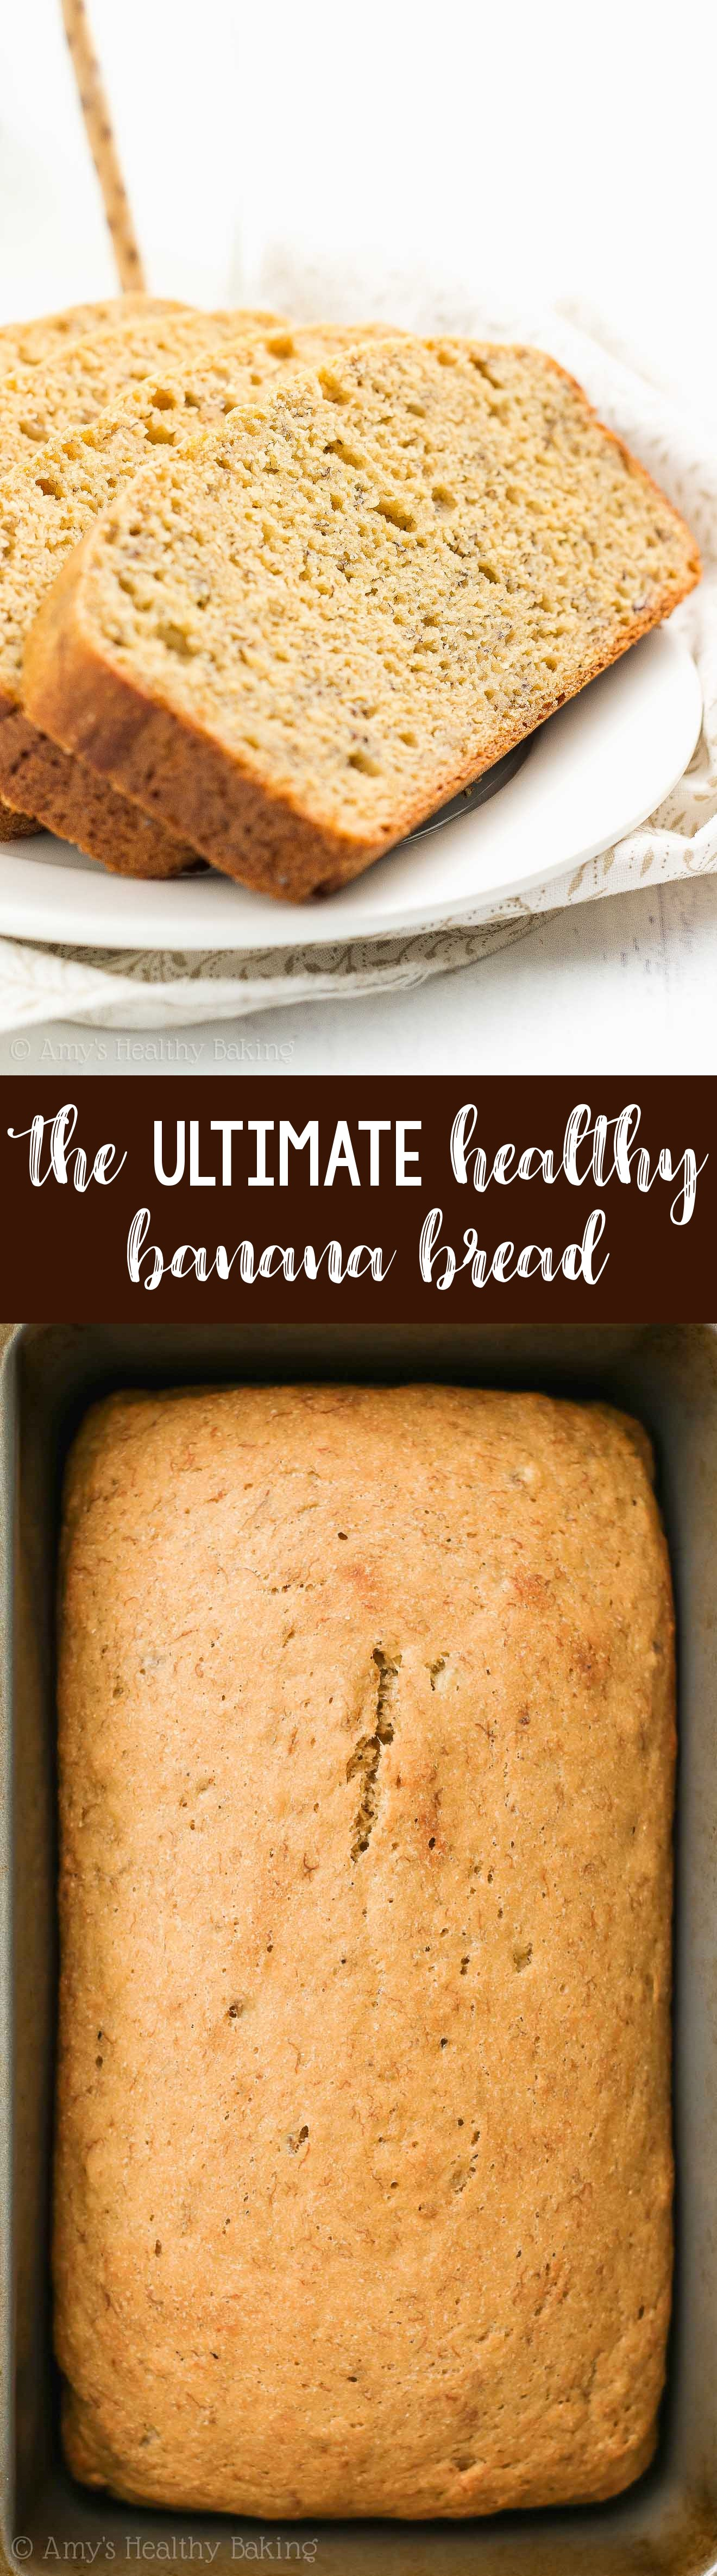 The ULTIMATE Healthy Banana Bread Recipe, which is clean eating and gluten free and low calorie